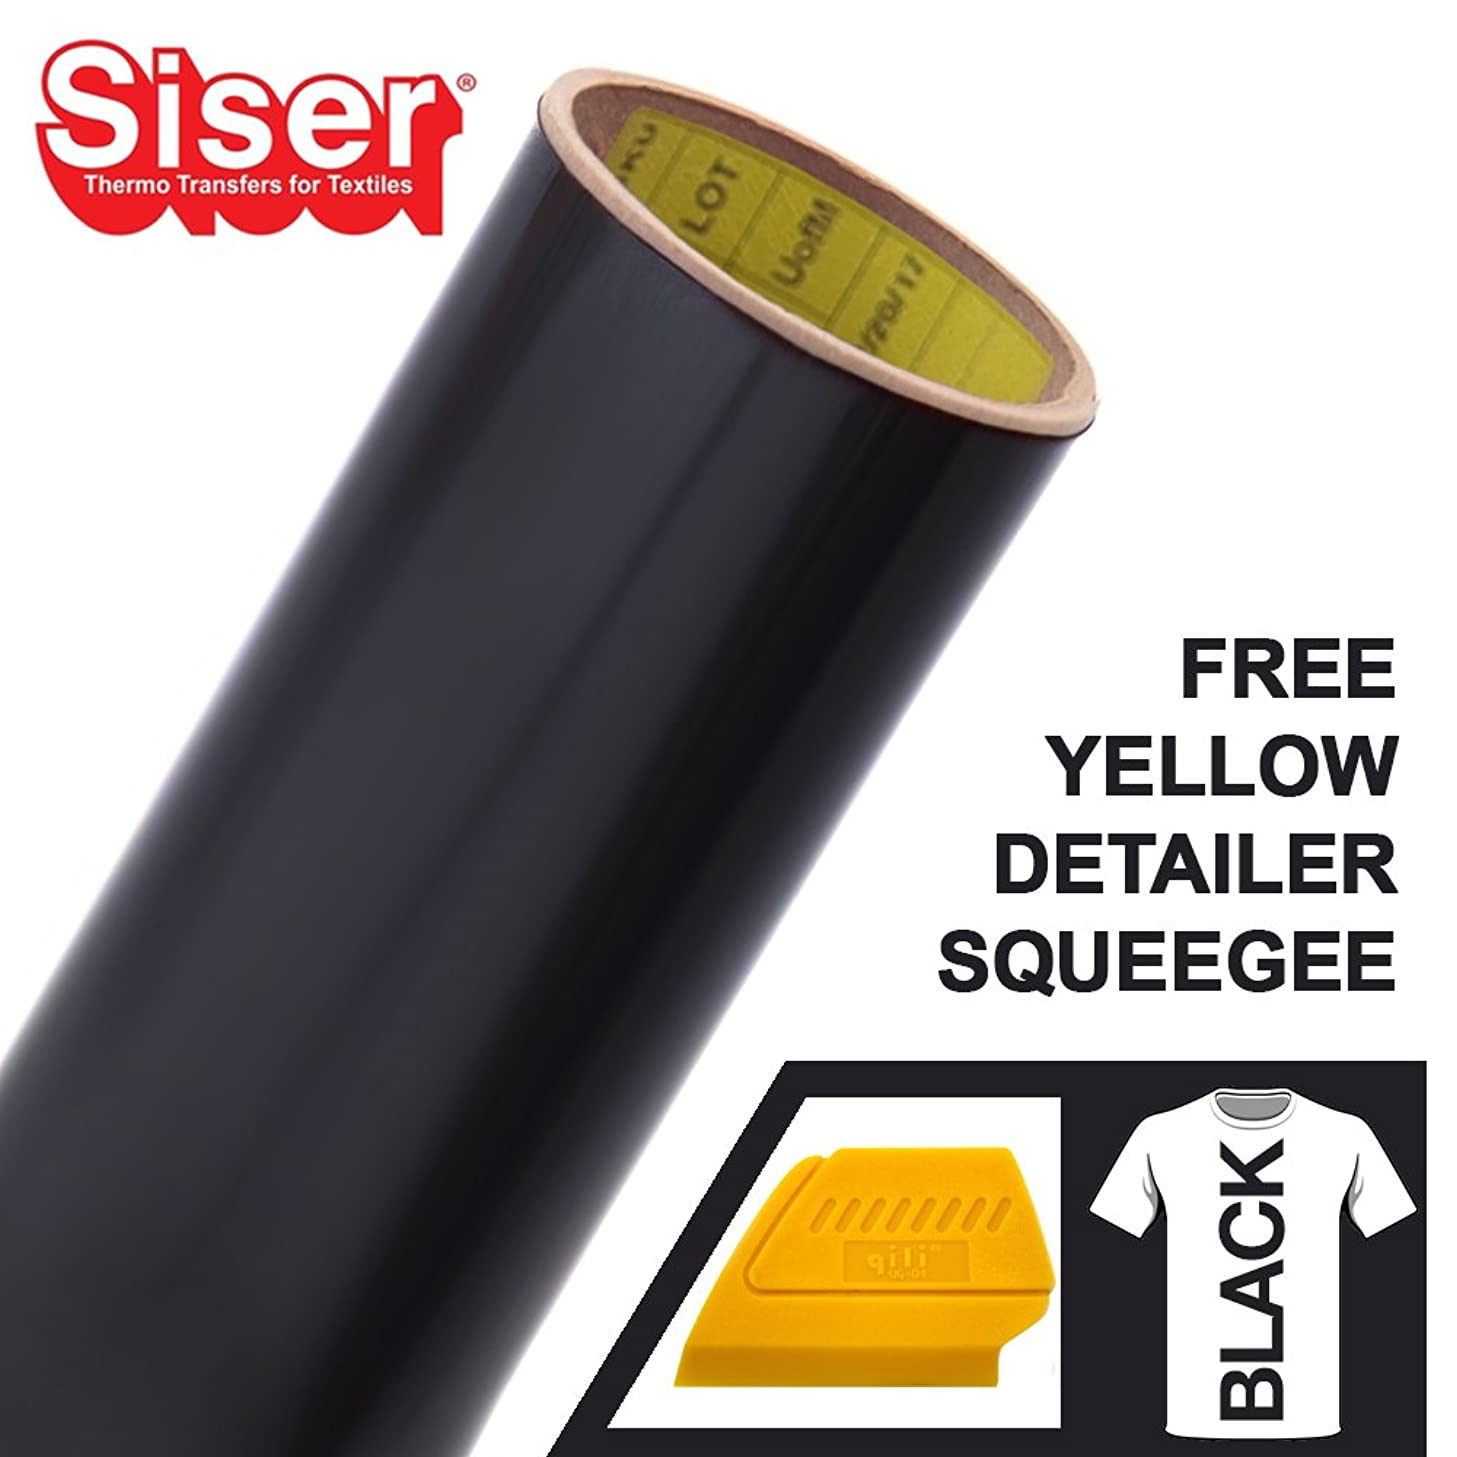 Siser Easyweed Heat-Transfer Vinyl Including Hard Yellow Detailer Squeegee (6ft x 10